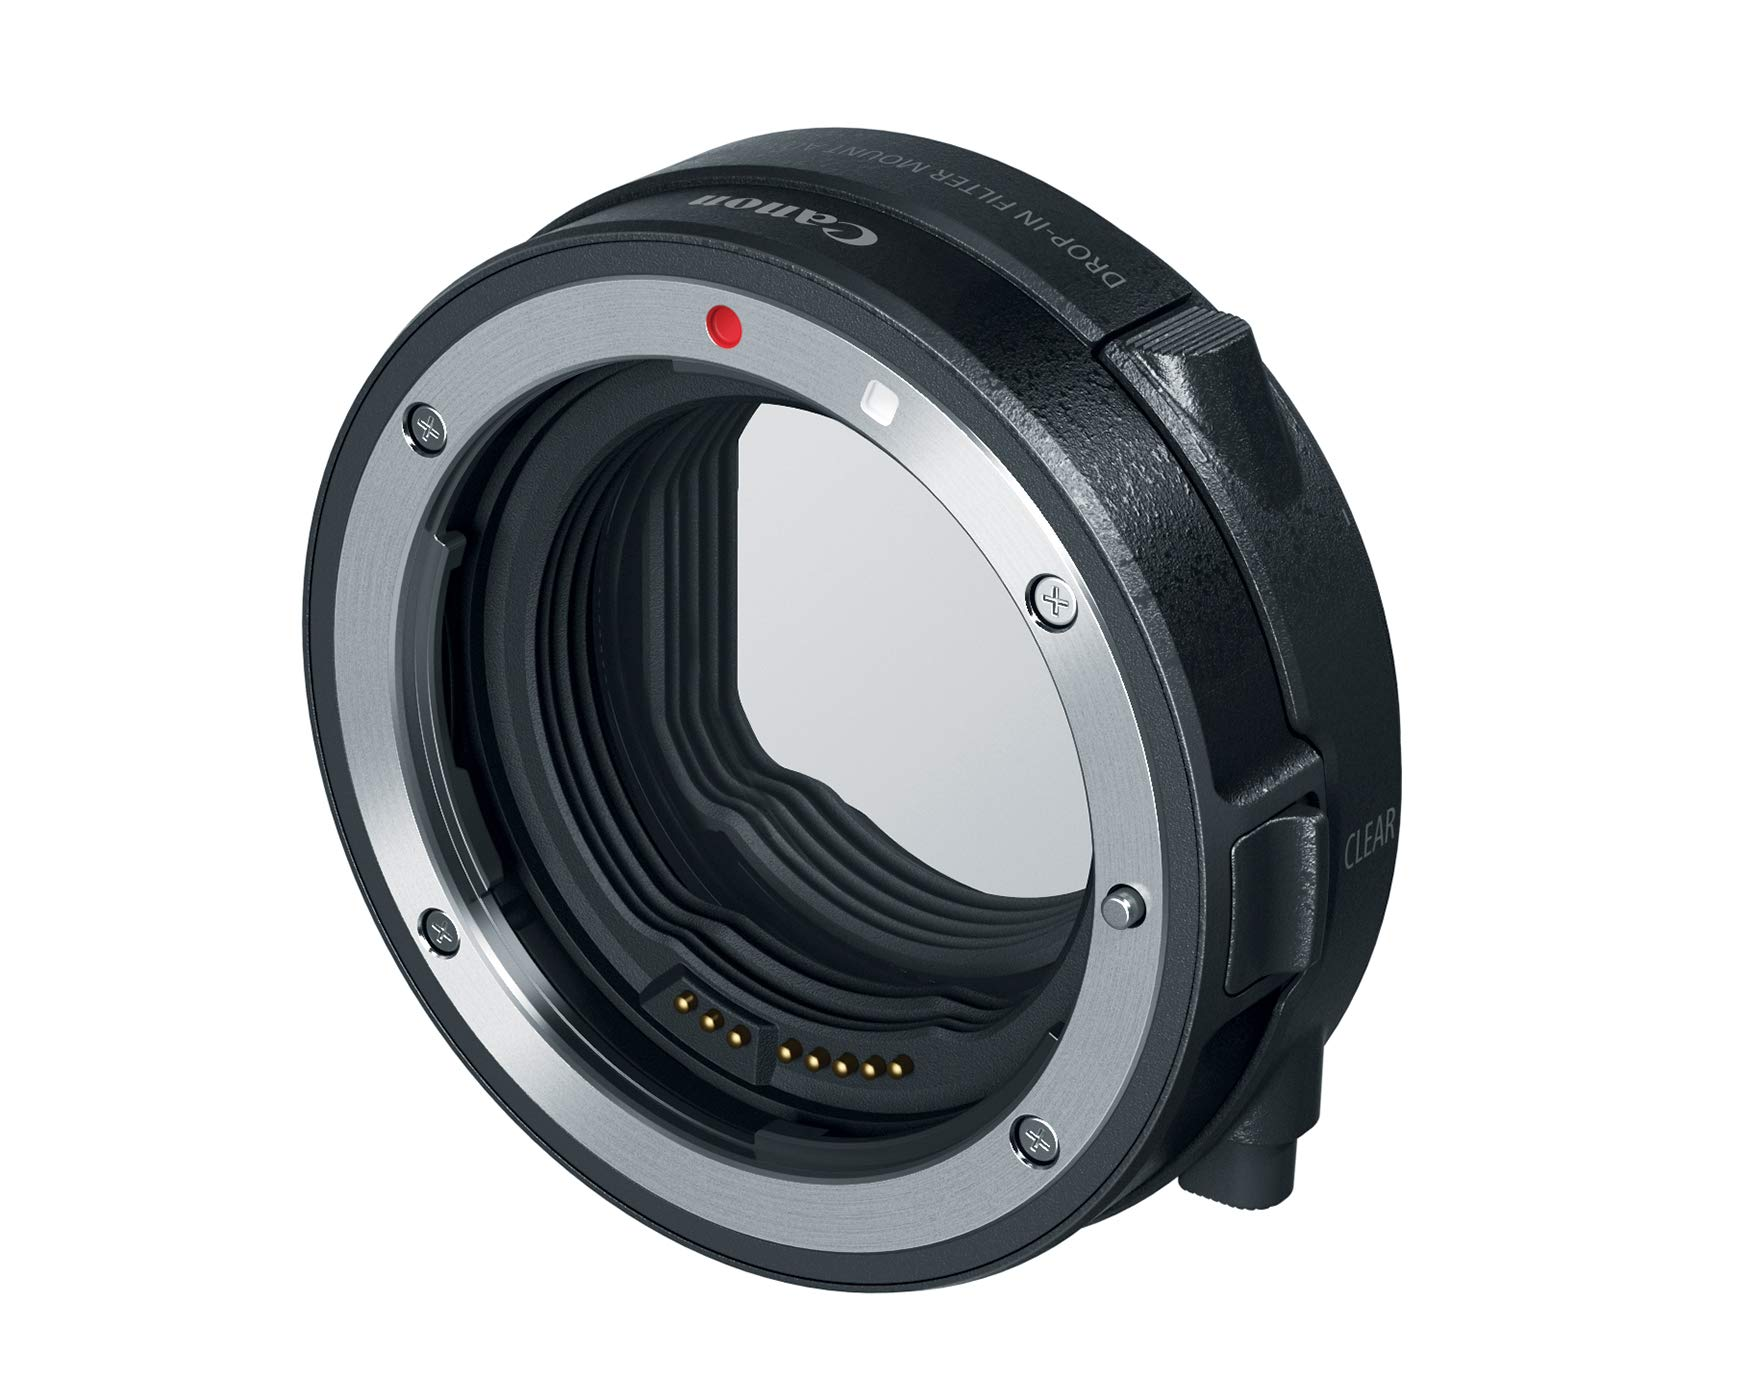 Canon Drop-in Filter Mount Adapter EF-EOS R with Circular Polarizing Filter by Canon